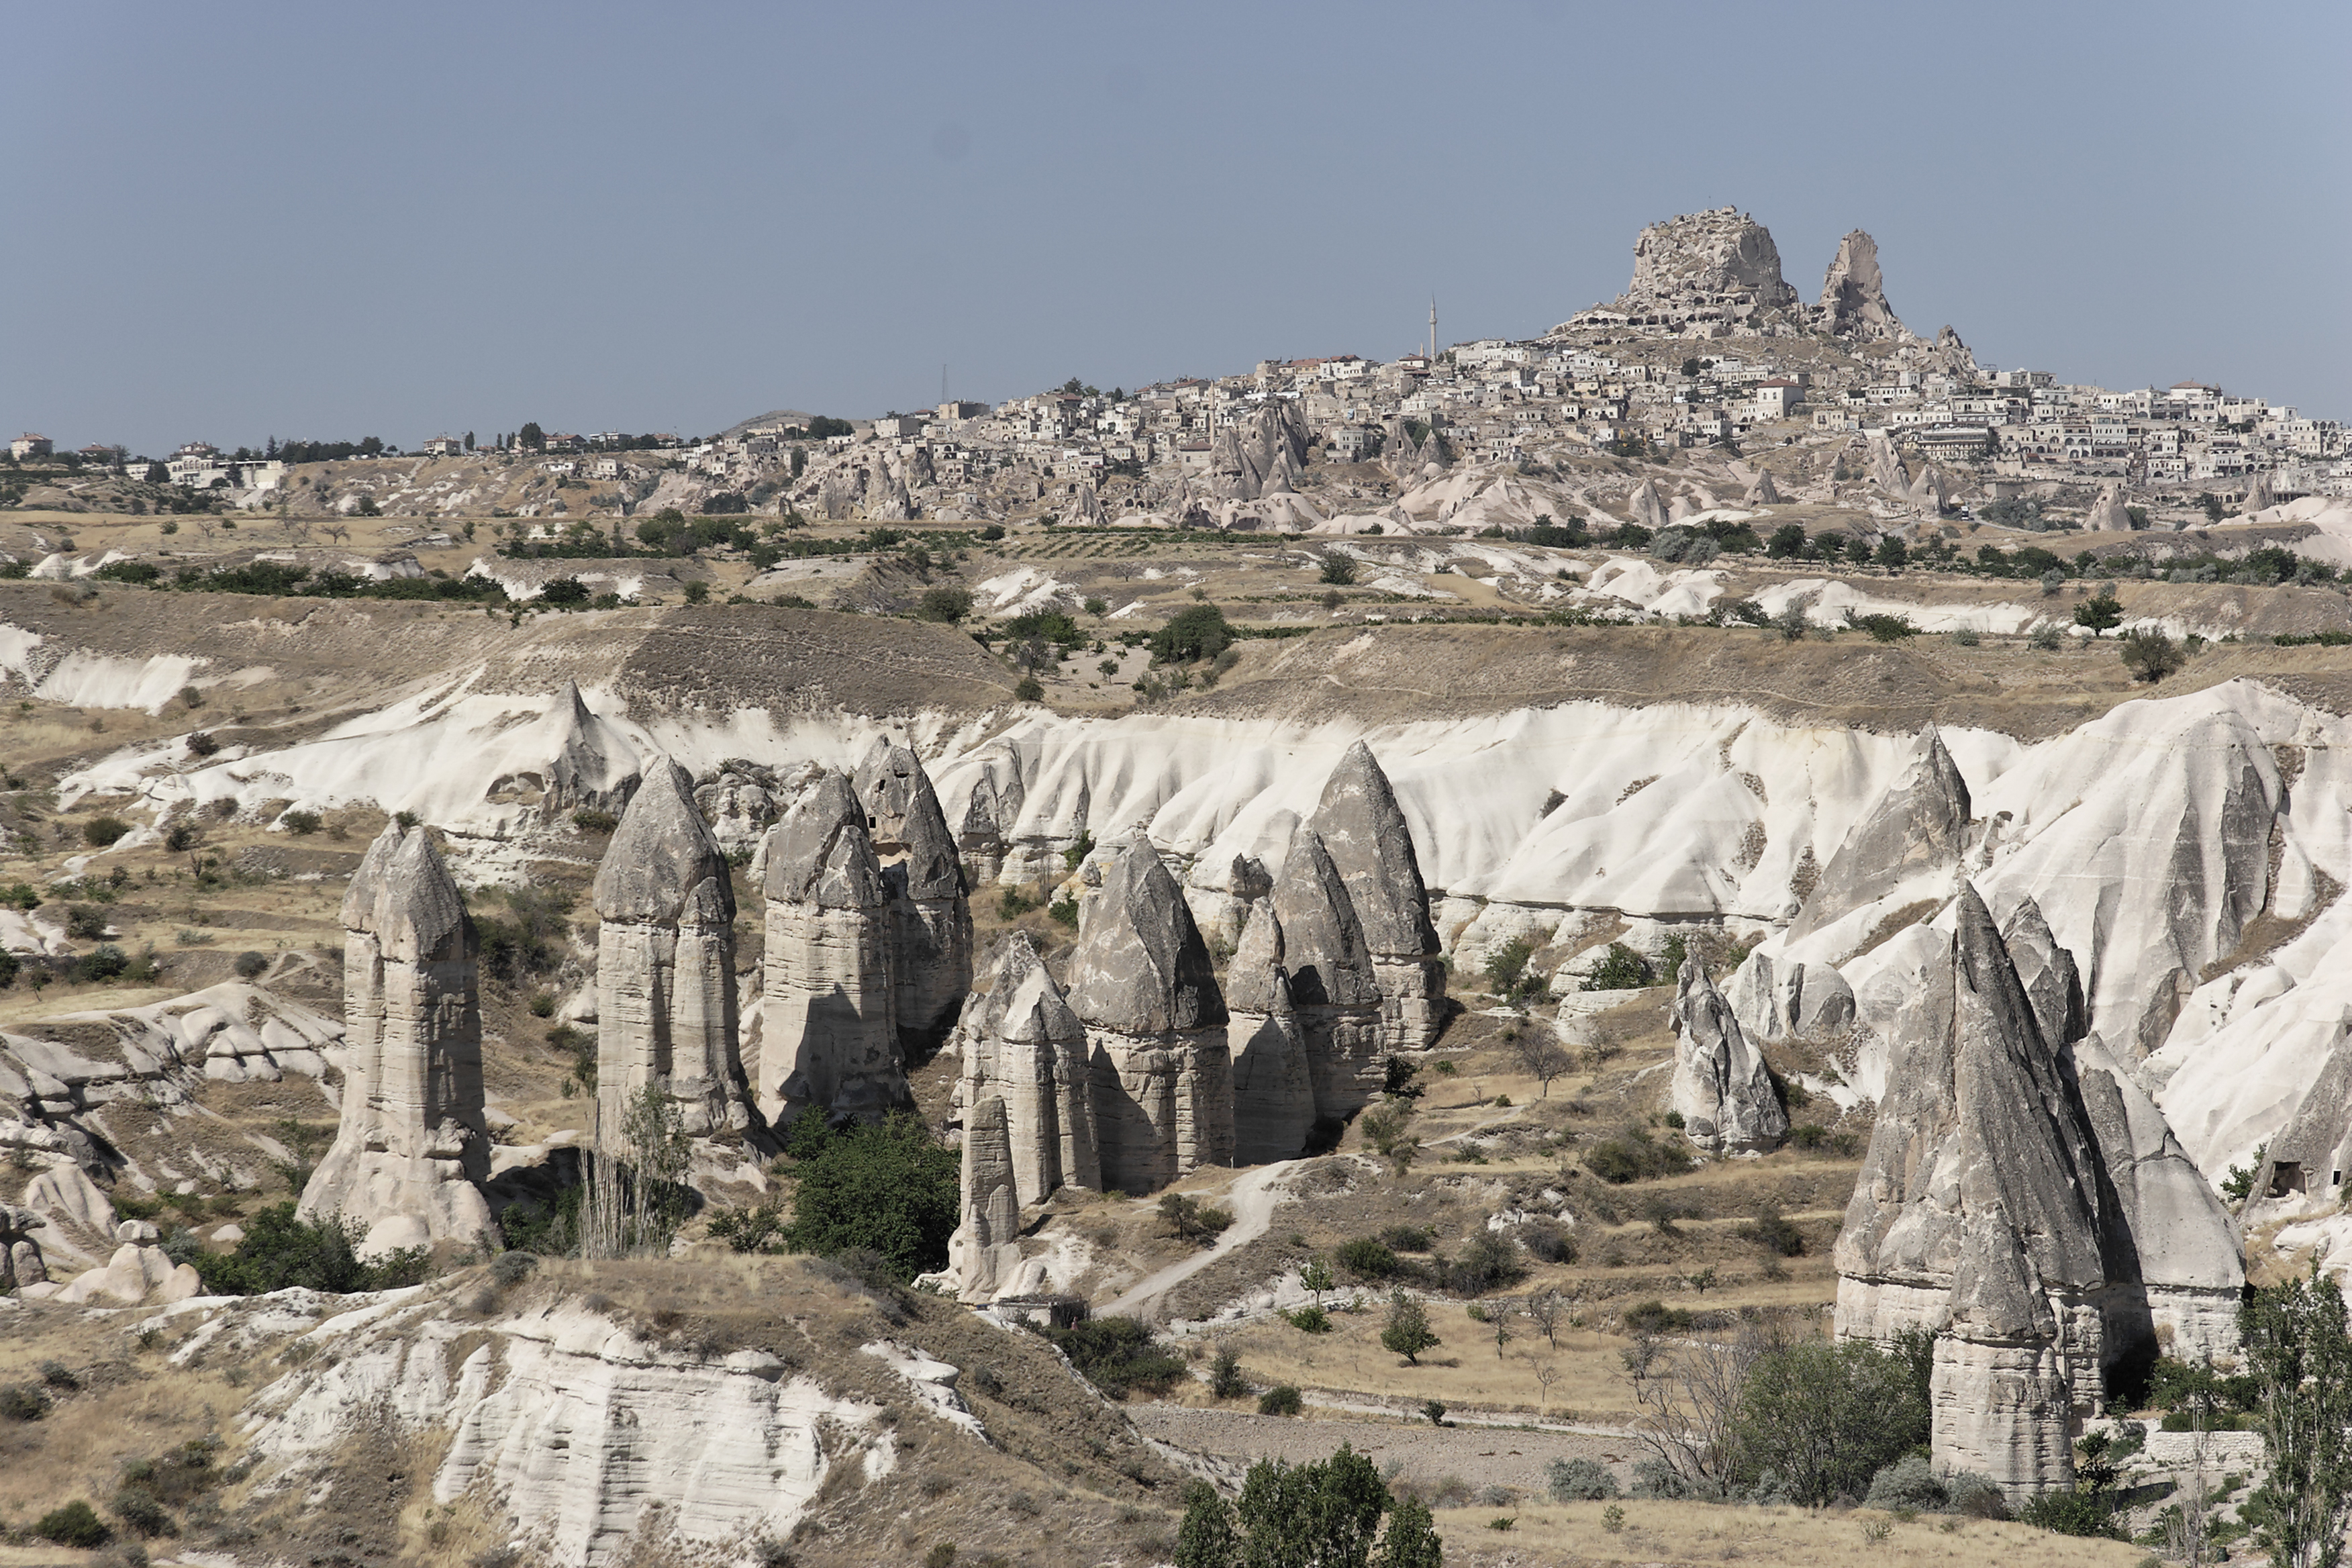 Fairy chimney rock formations, Goreme, Cappadocia Turkey 42.jpg - Goreme, Cappadocia, Turkey